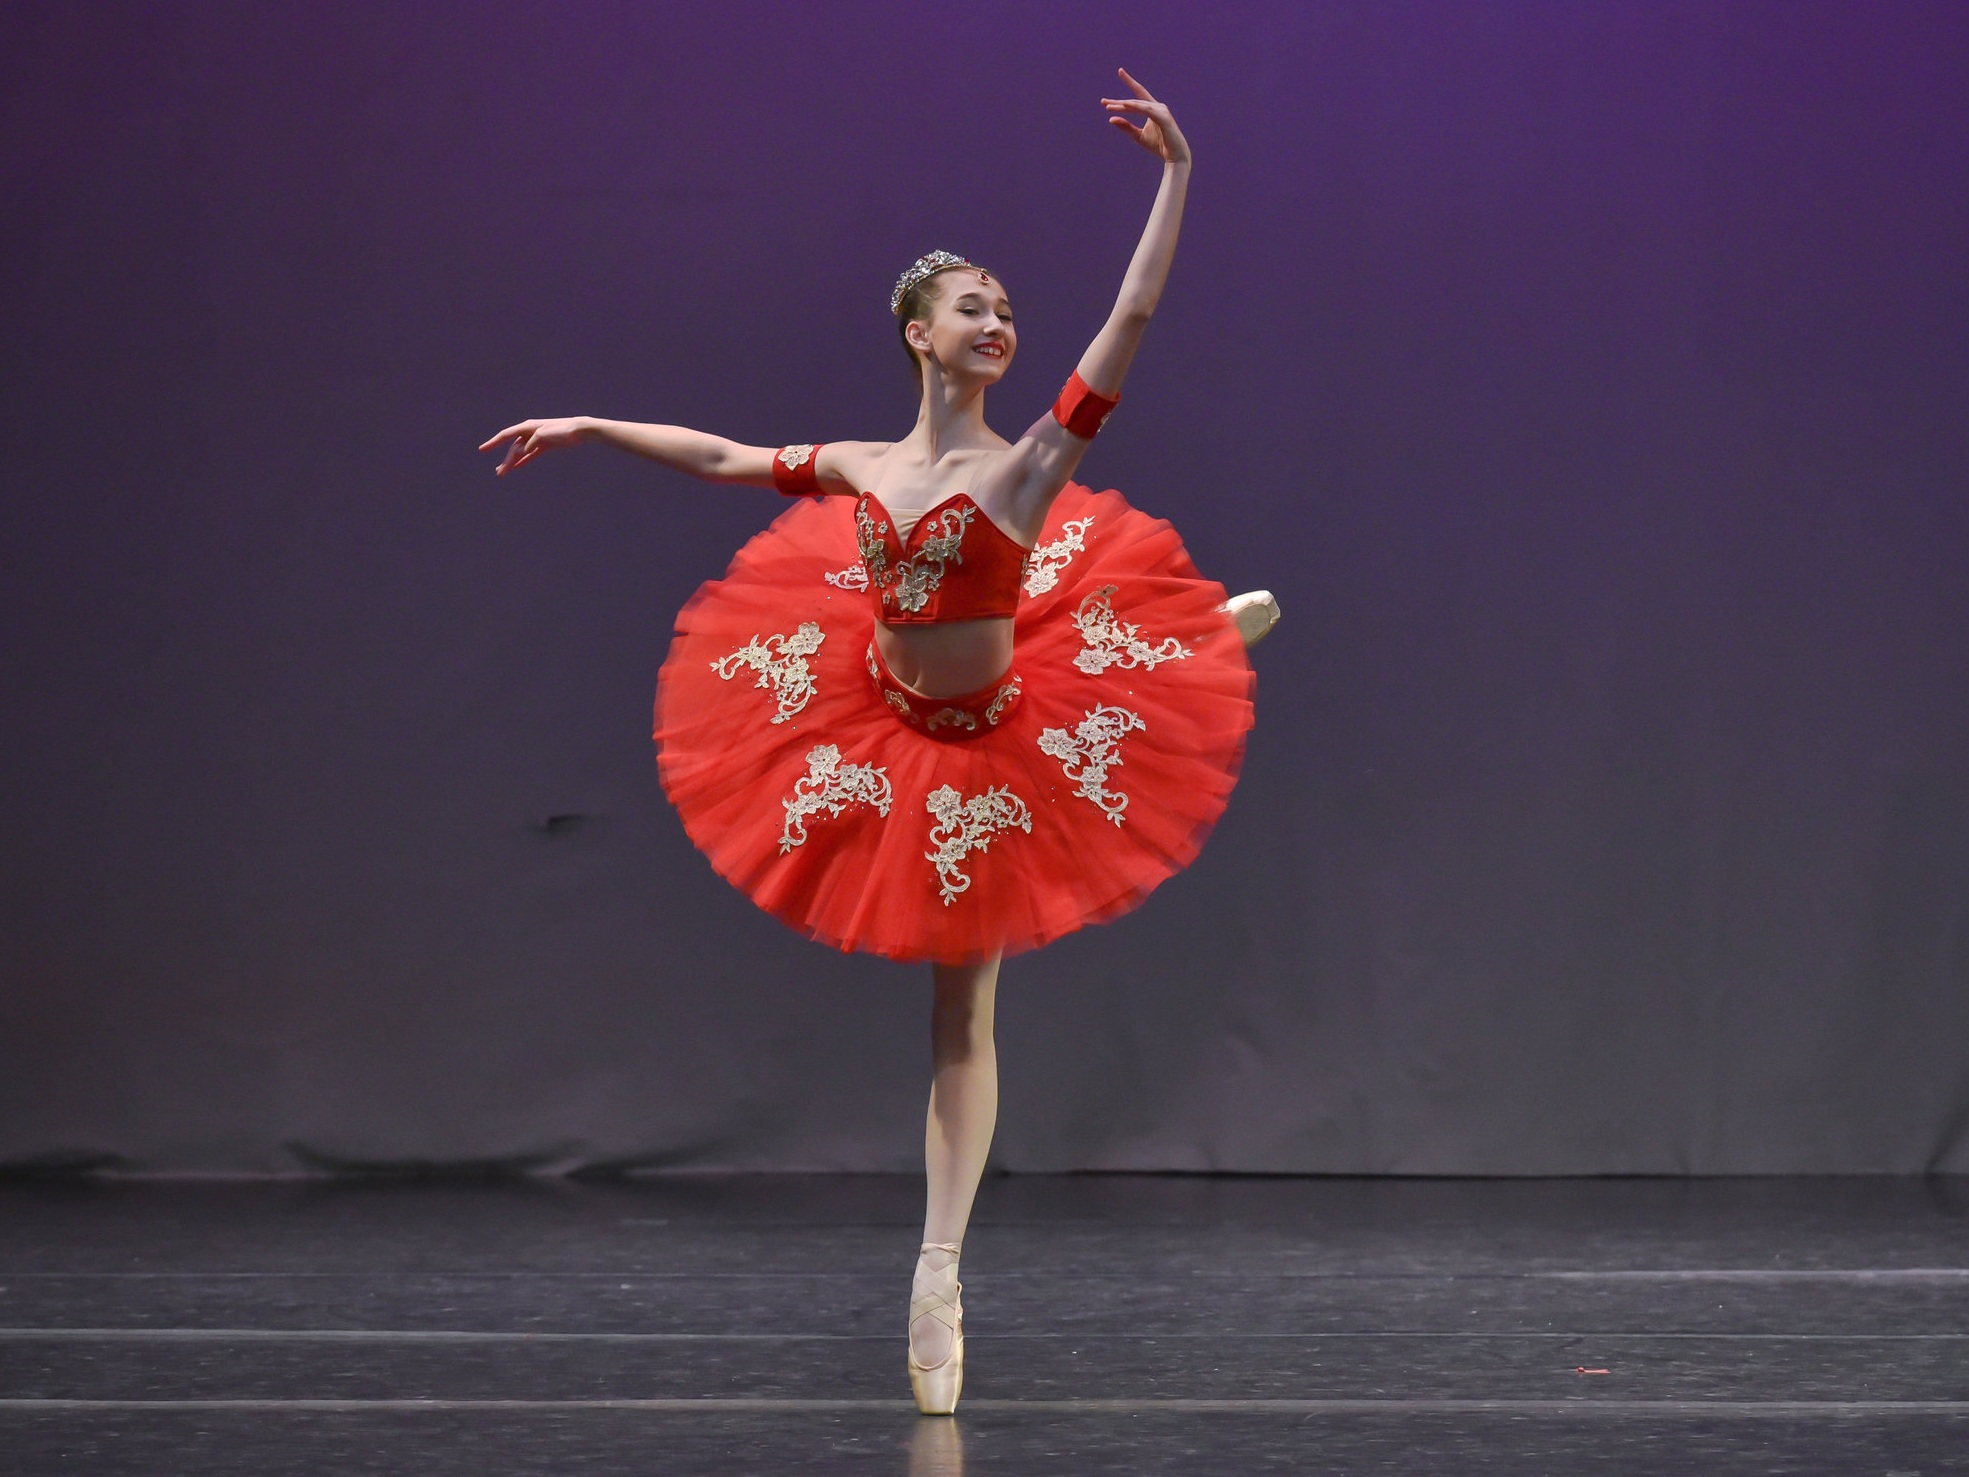 Mackenzie Kirsch is the first dancer from San Antonio to be selected to compete in the prestigious Prix de Lausanne competition in 2019. She was also one of only 10 American dancers to be selected. In addition, she and DCSA dancer Lucy Hassmann were personally invited to compete in the Vaganova Prix in 2018. Mackenzie has also been awarded 1st place in Classical categories at YAGP regional competitions.